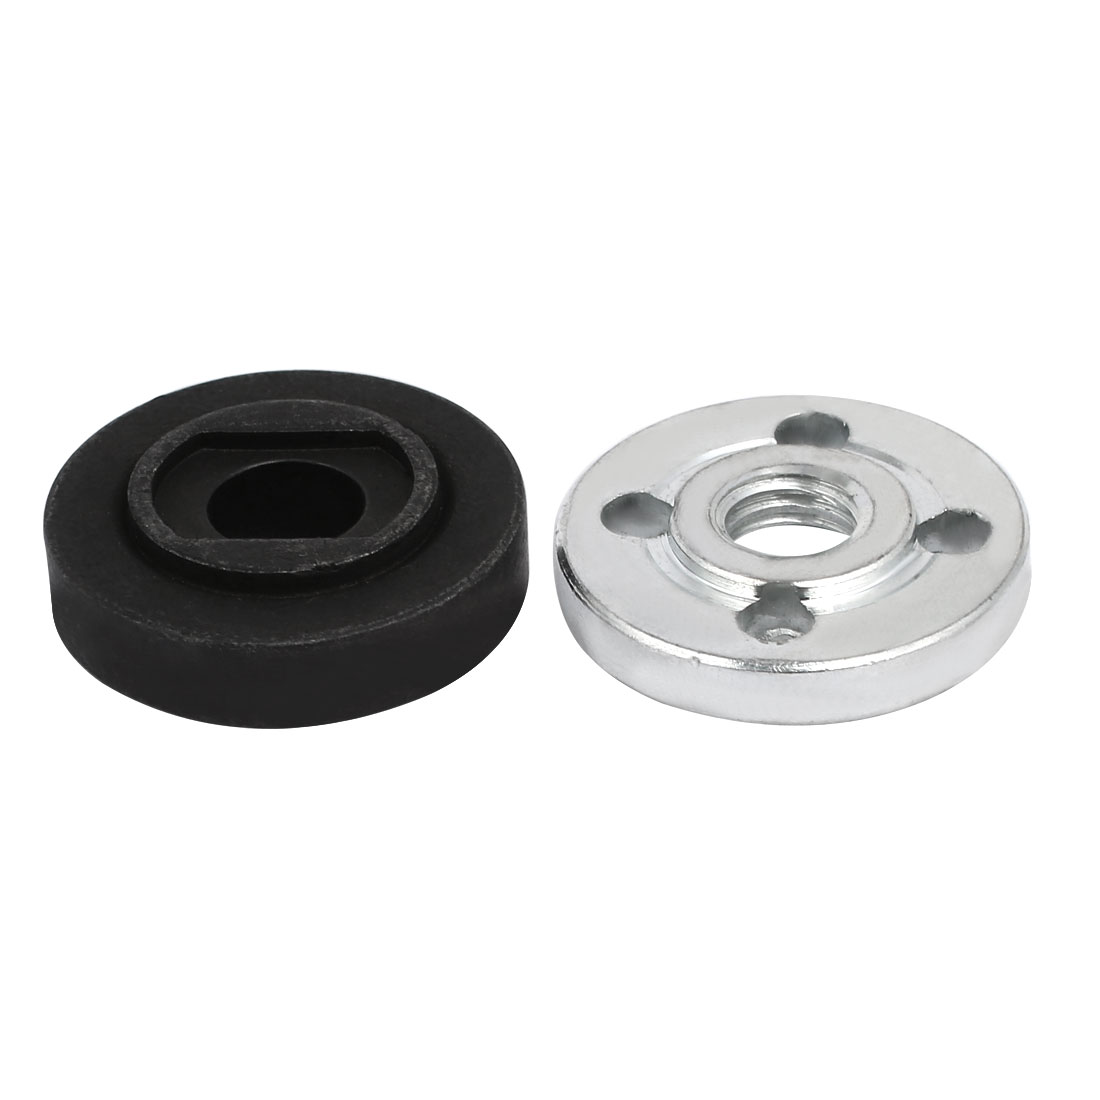 Pair Metal Round Clamp Inner Outer Flange Fixing for Electrical Angle Grinder